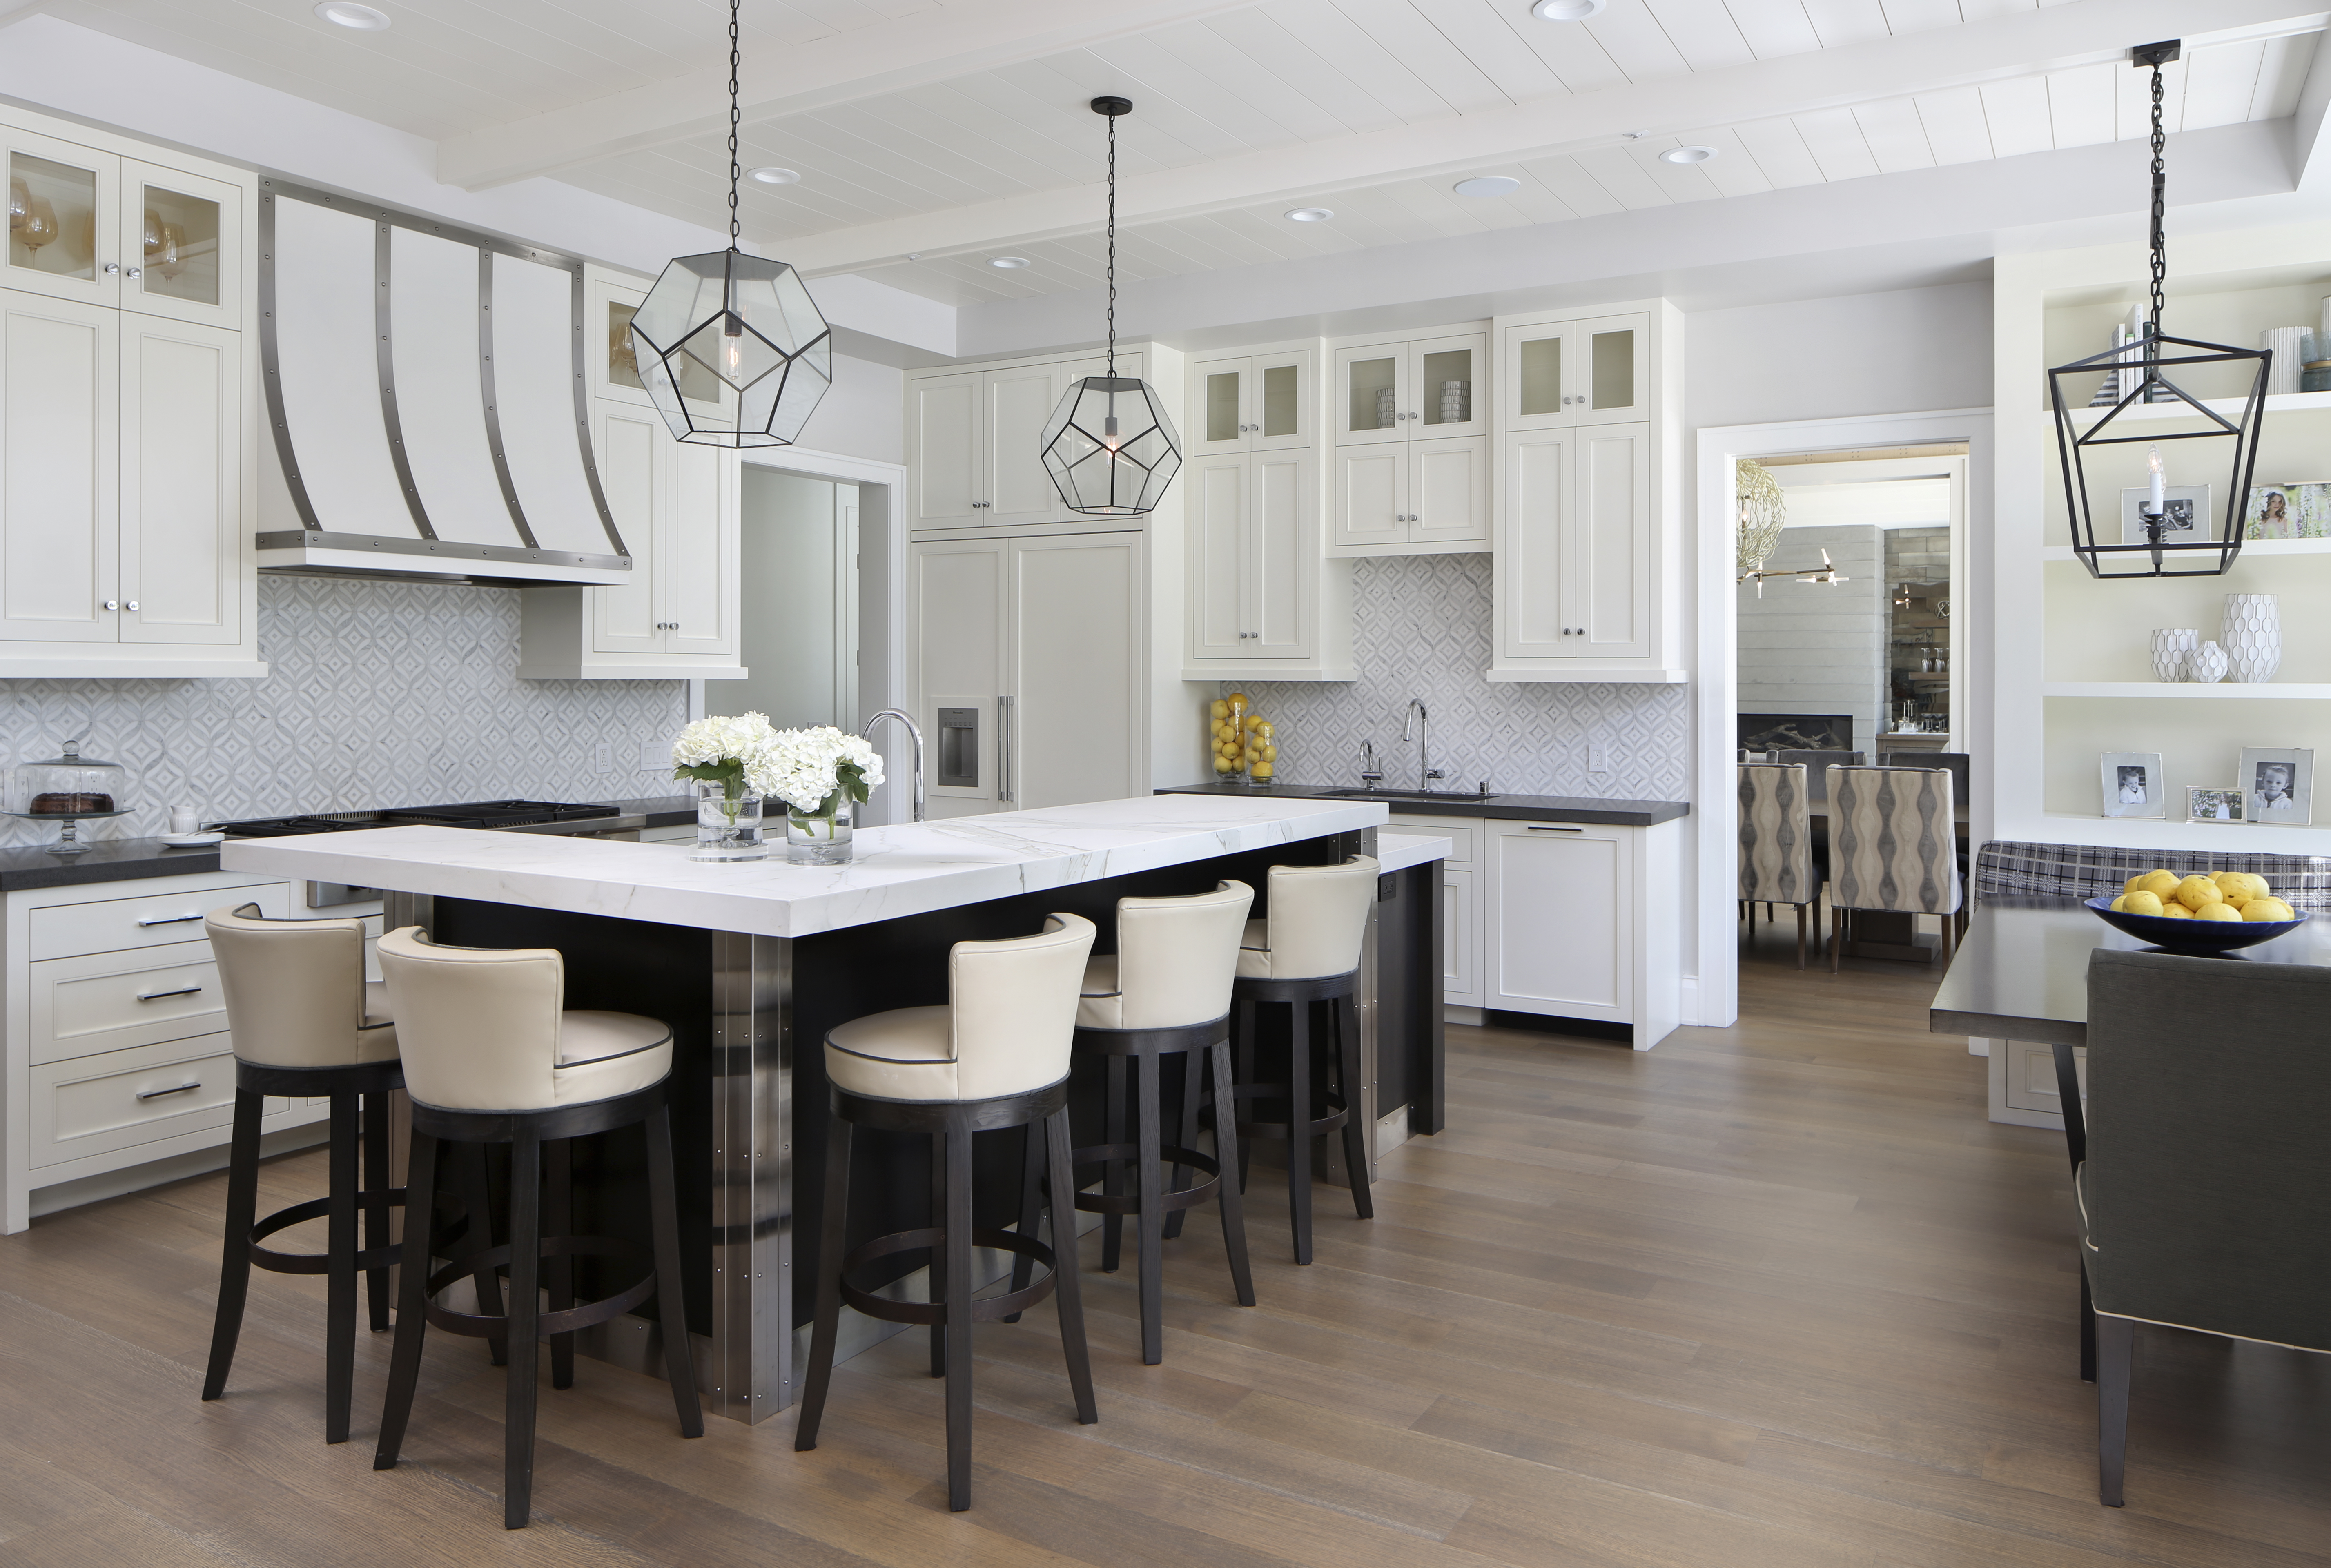 From the white-paneled ceiling to the bright cabinetry, this modern kitchen is full of light tones.The gray and white patterned backsplash, from Walker Zanger, matches the room's silver accents — from the hardware to the custom hood. The sleek countertop, made of Ann Sacks porcelain slabs, is accompanied with Lee Industries stools upholstered in Maharam fabric.